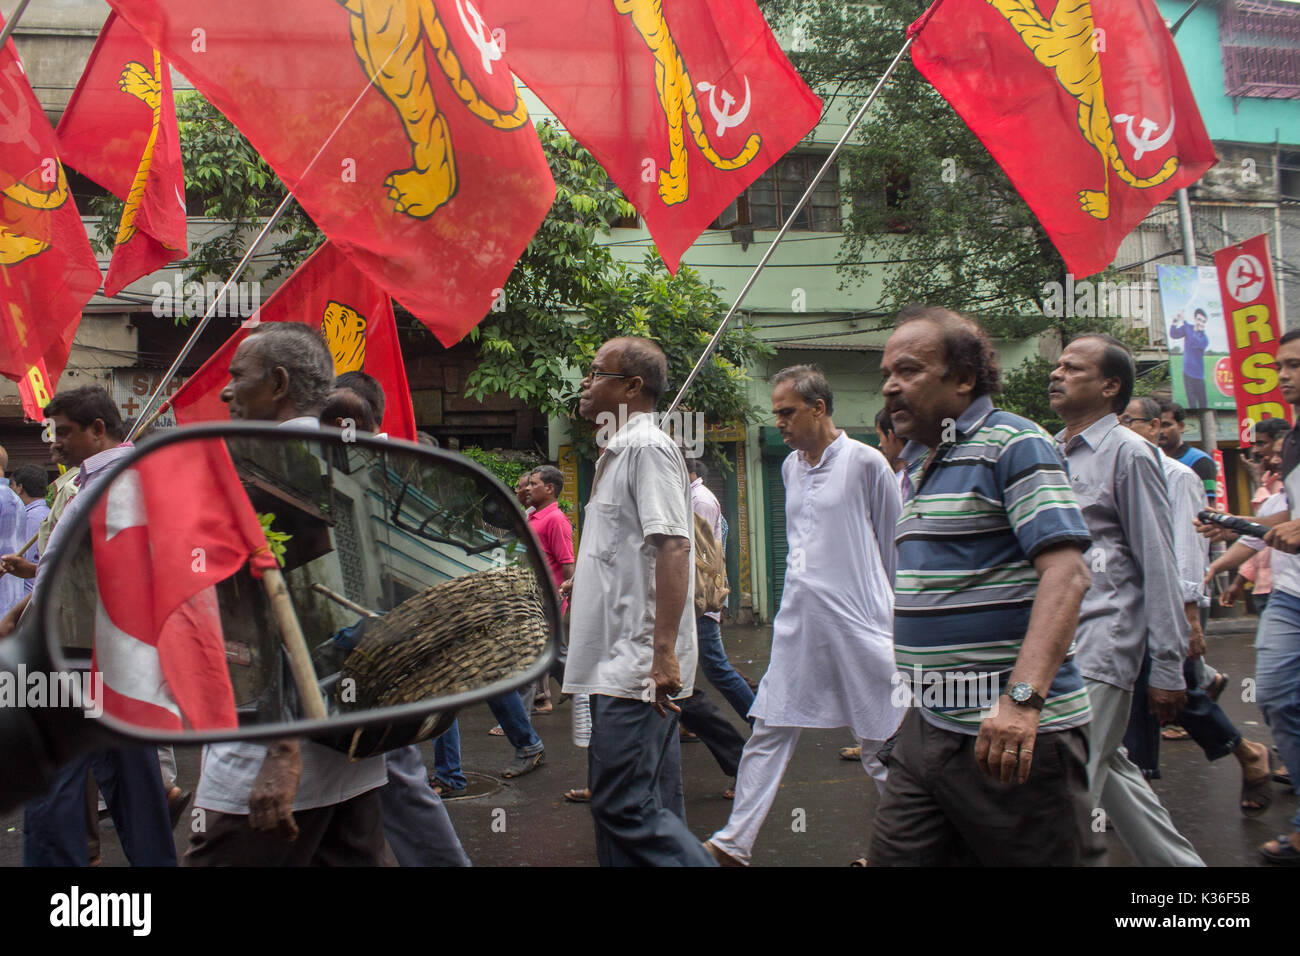 Kolkata, India. 01st Sep, 2017. kolkata,India, 01 september, 2017. People carrying the party flags in the anti-imperialist rally. Credit: Sudip Maiti/Alamy Live News - Stock Image